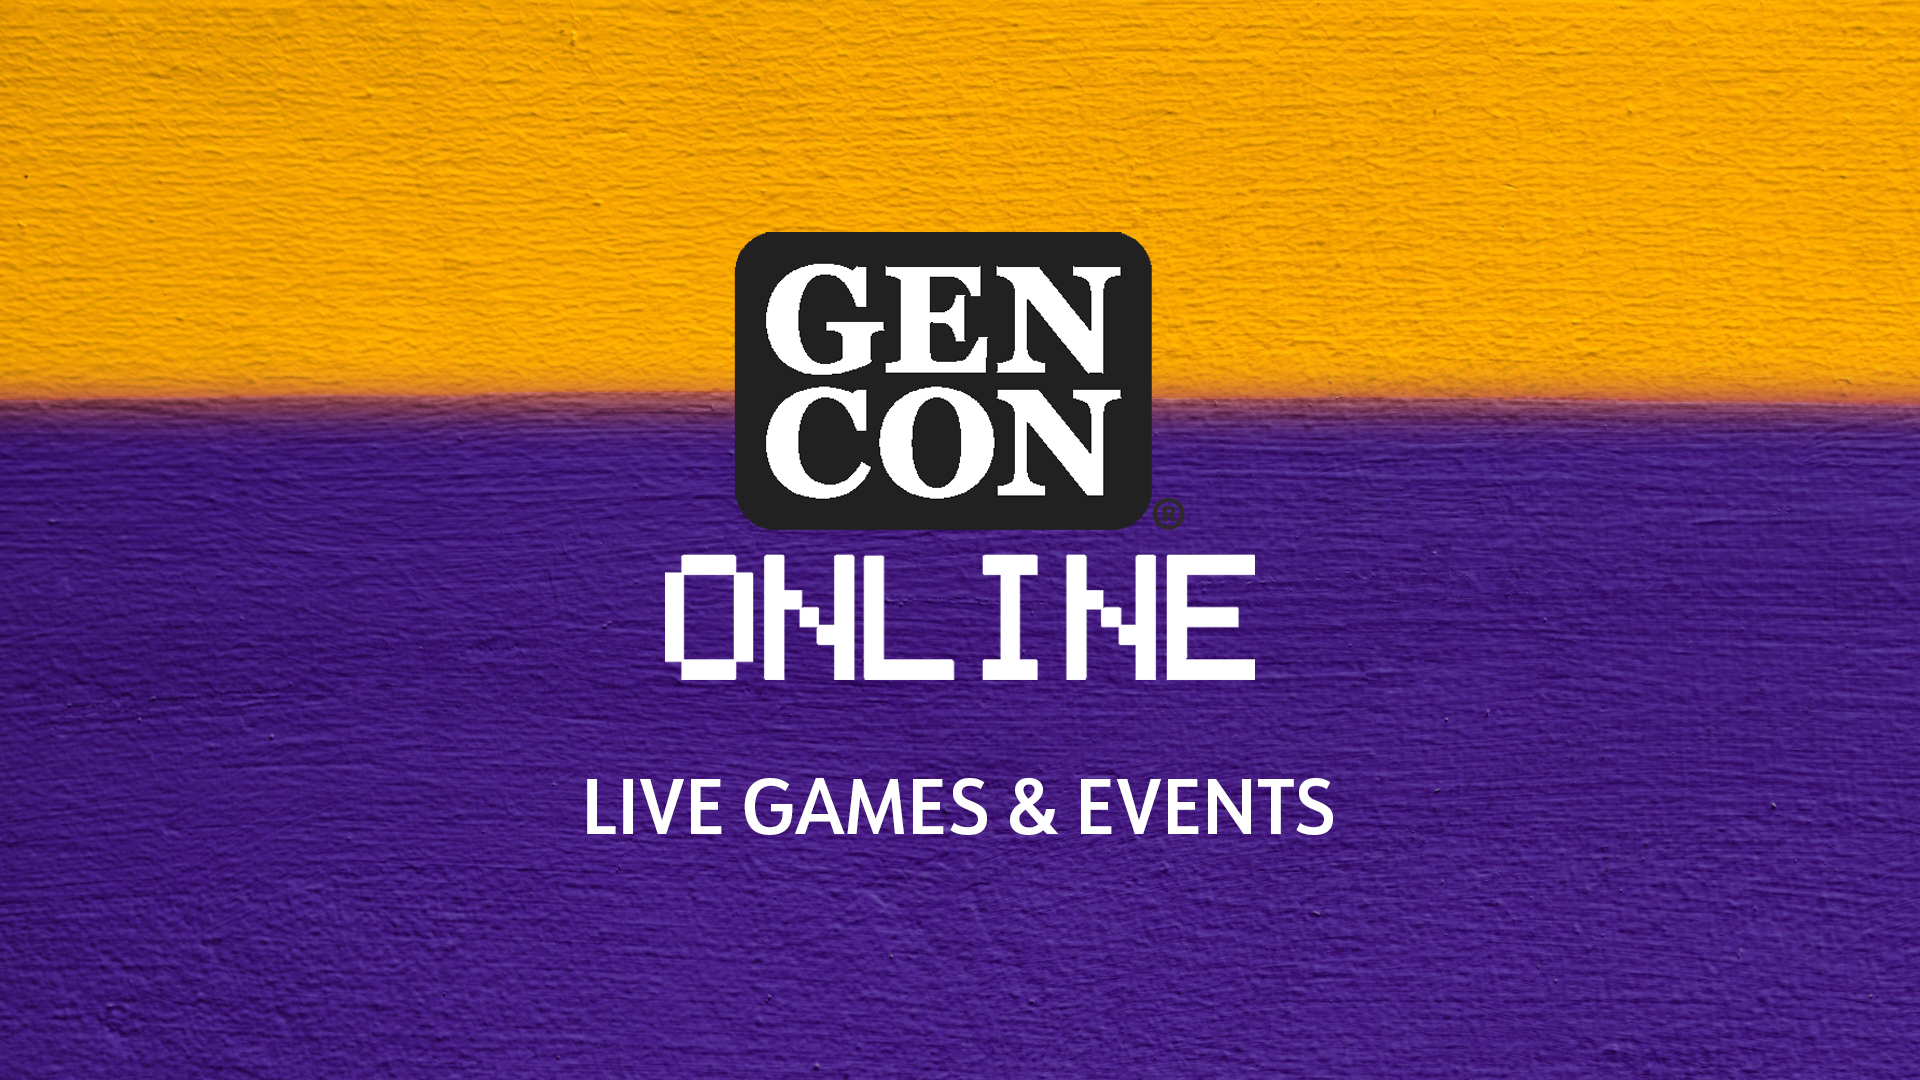 Gen Con 2020 Live Games and Events